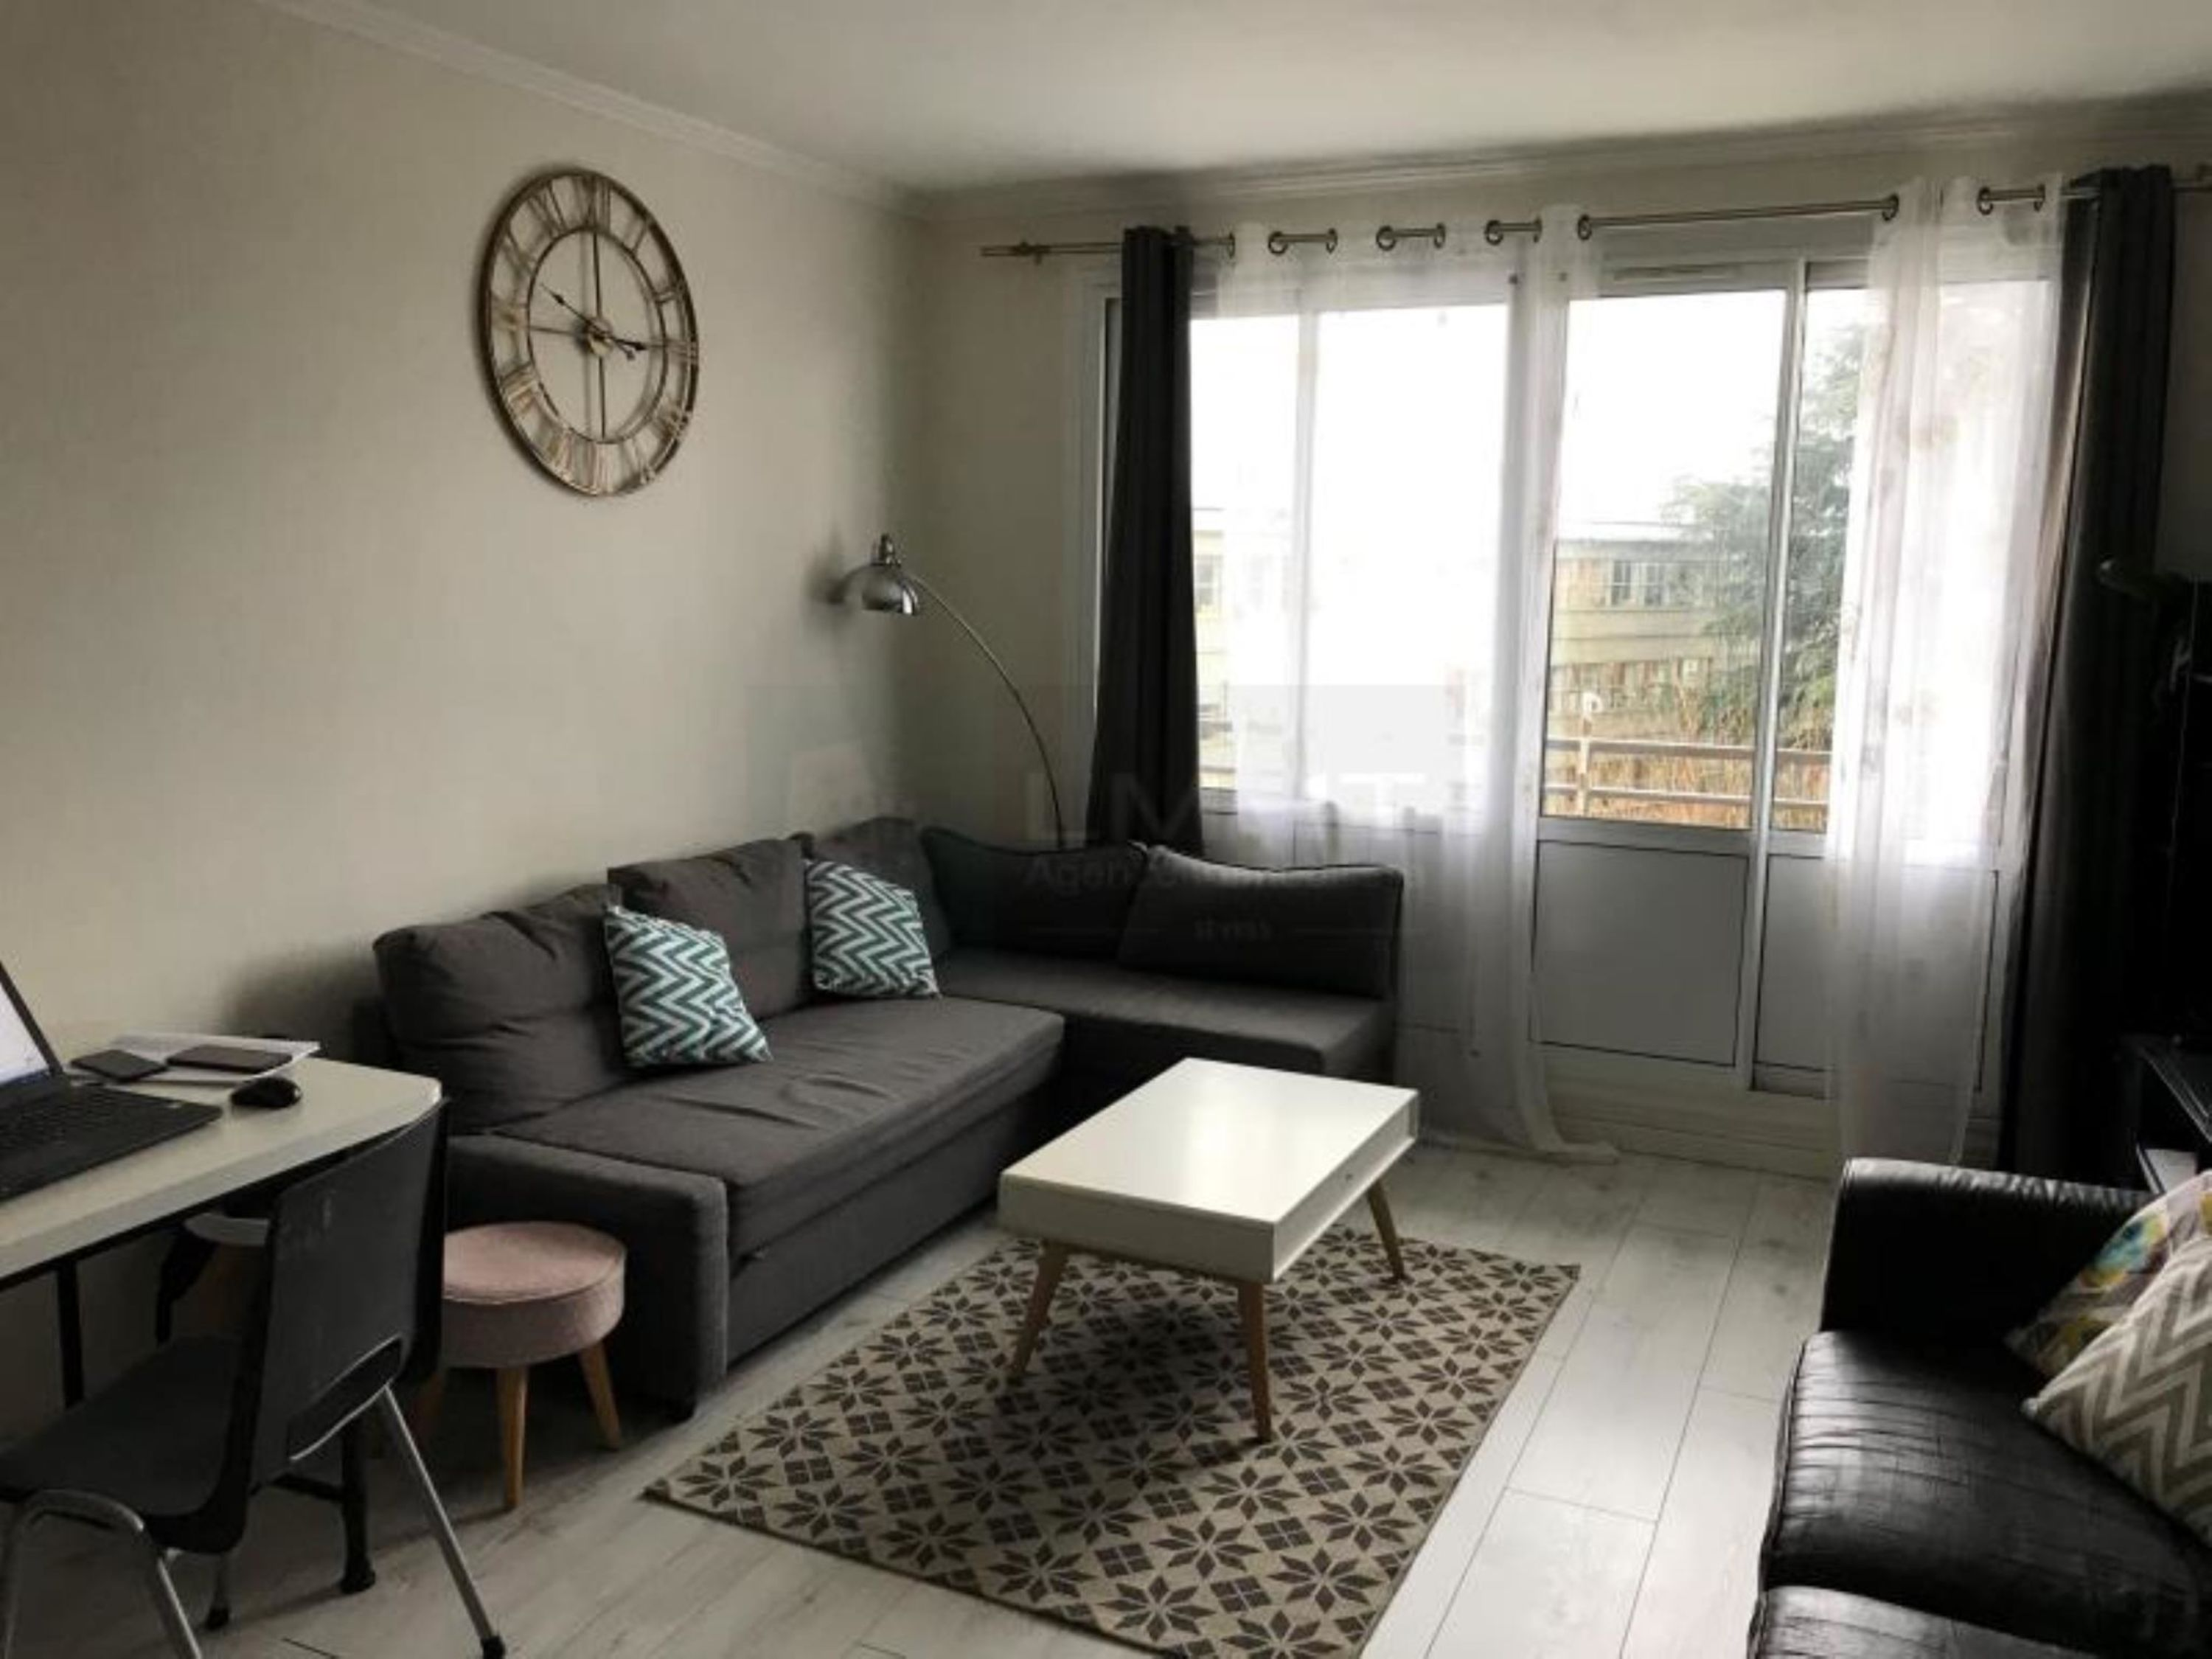 agence immobilière sevres 92 le chesnay 78 achat vente location appartement maison immobilier LMHT ANF GWAXVVMQ